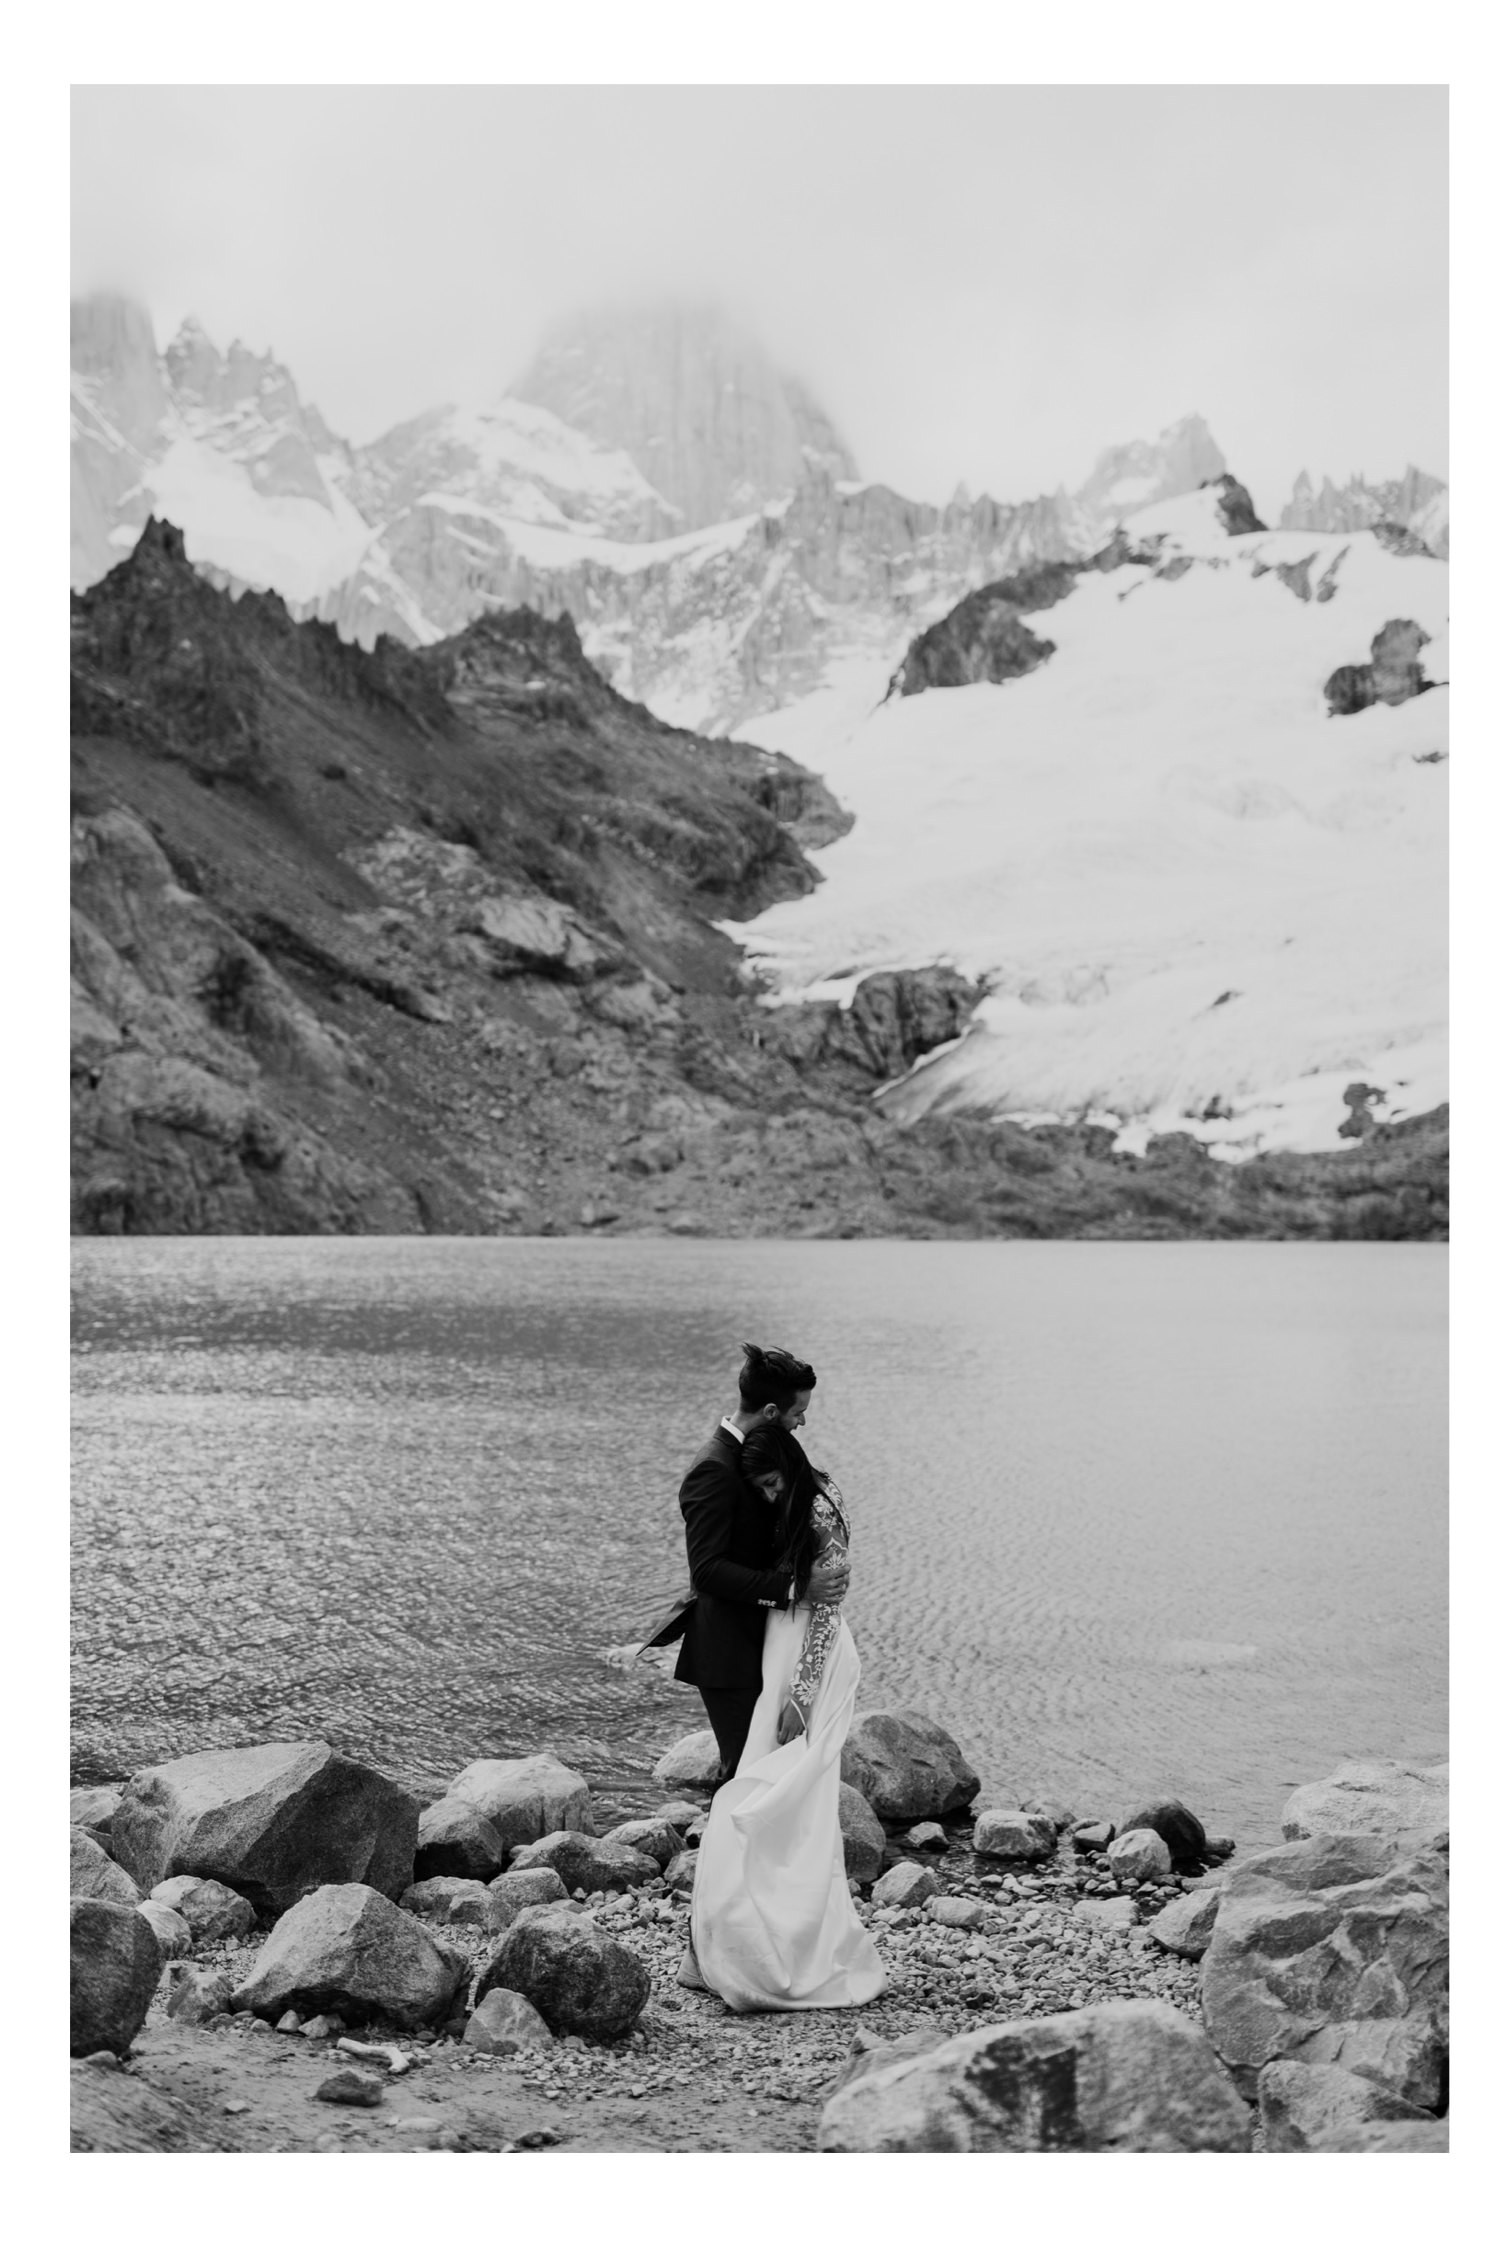 patagonia-argentina-adventure-wedding-session-33.jpg